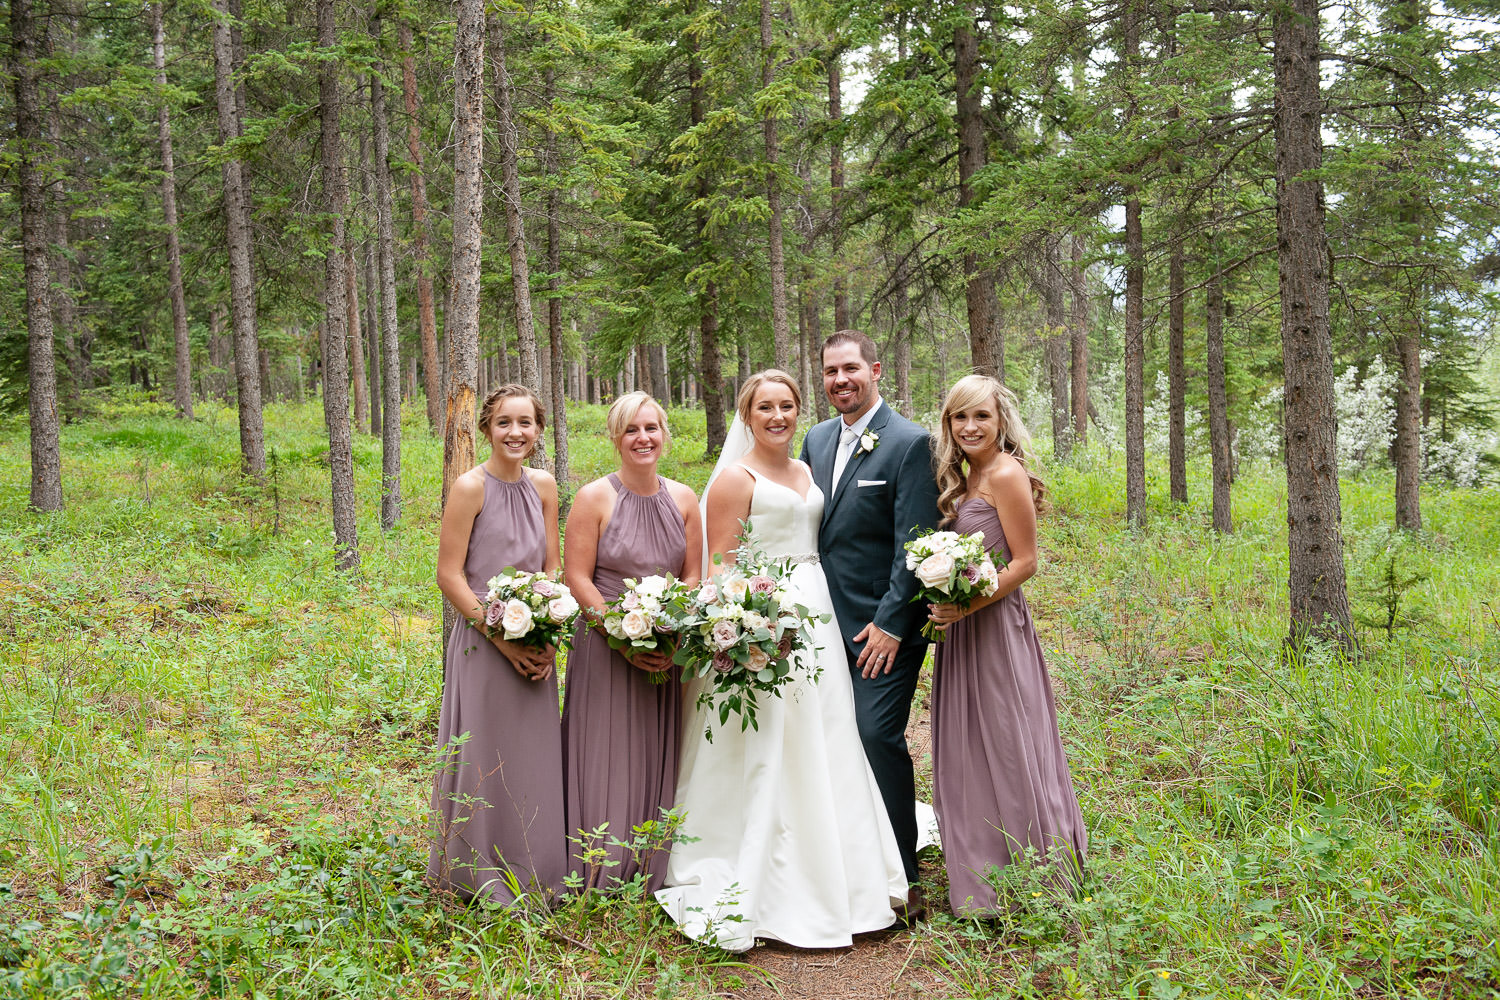 Bridal party portrait in Canmore captured by Tara Whittaker Photography